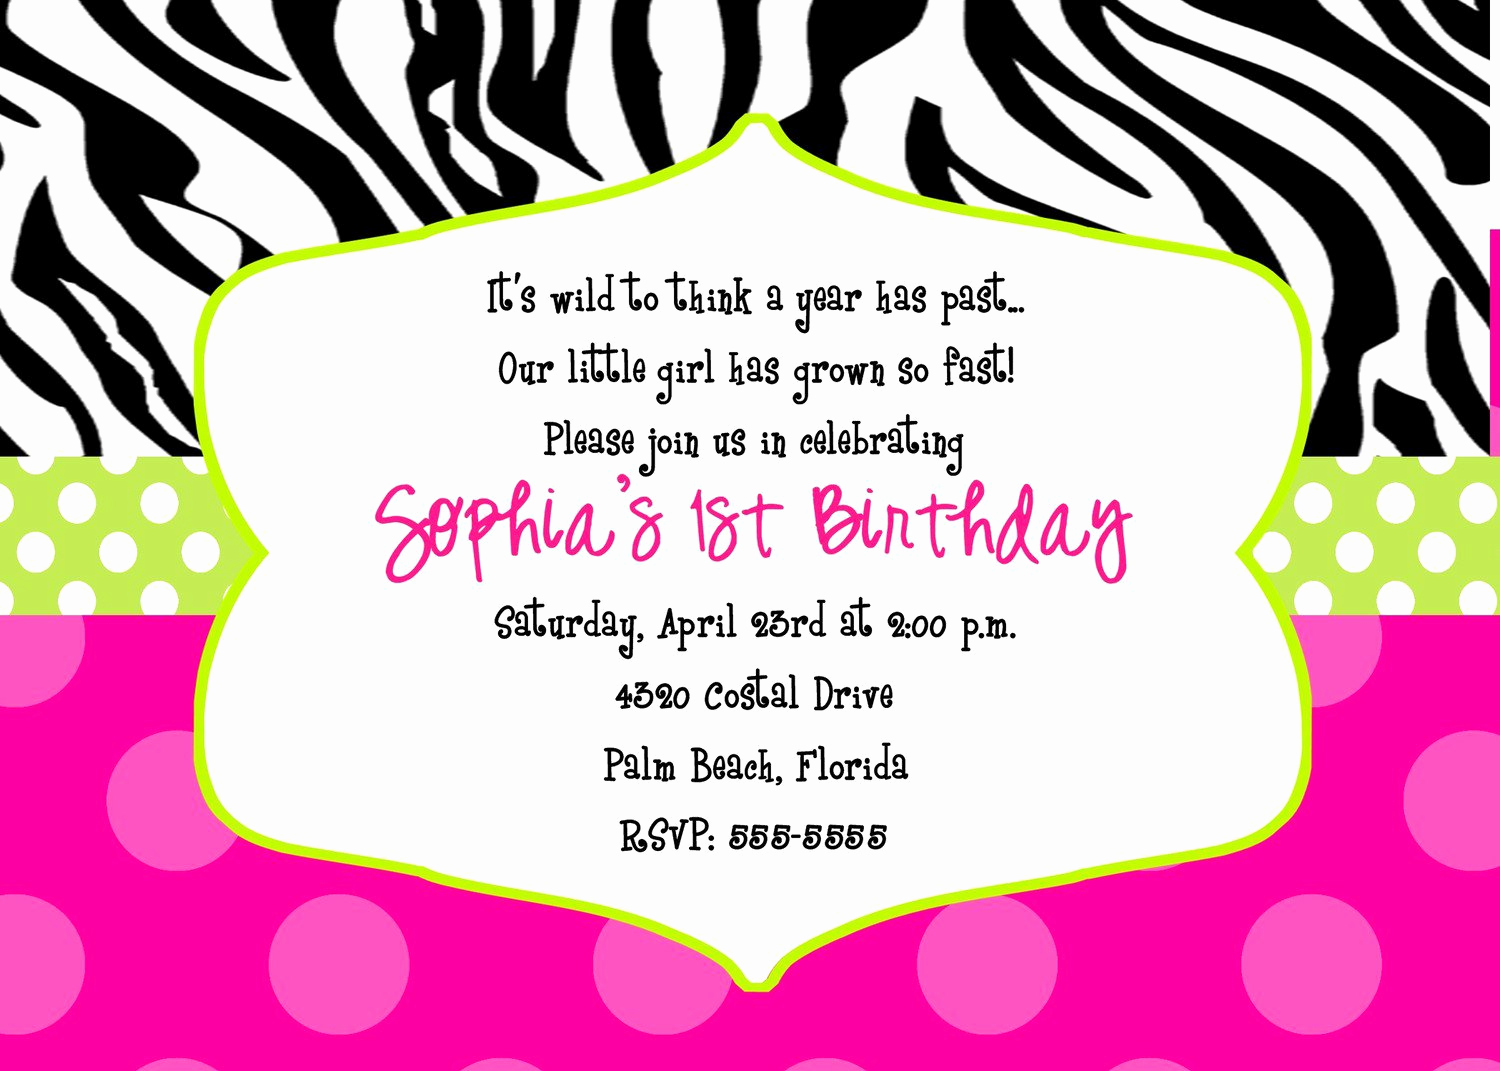 Free Printable Invitations Templates New Free Printable Birthday Invitation Templates for Adults